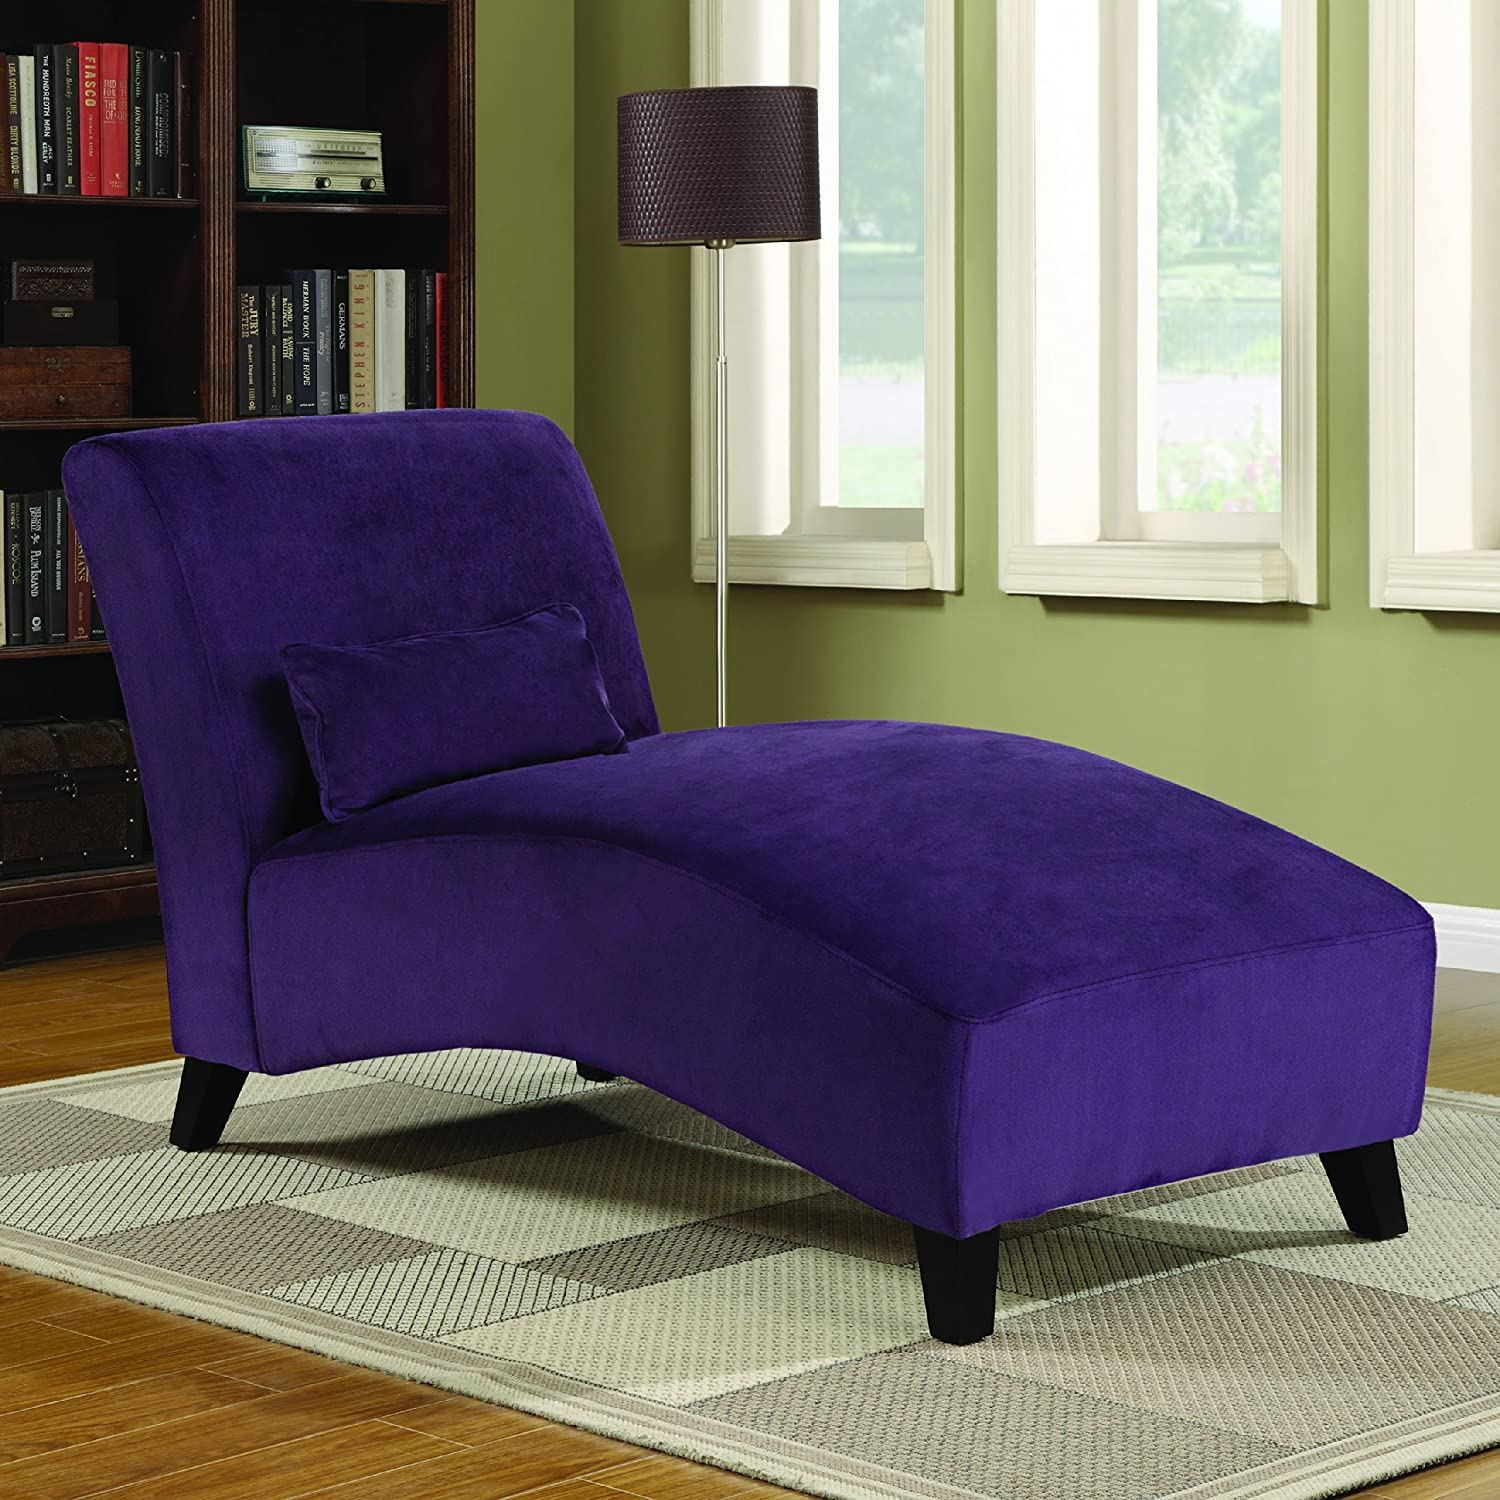 Handy Living Chaise Lounge Chair Purple Amazon Kitchen & Home